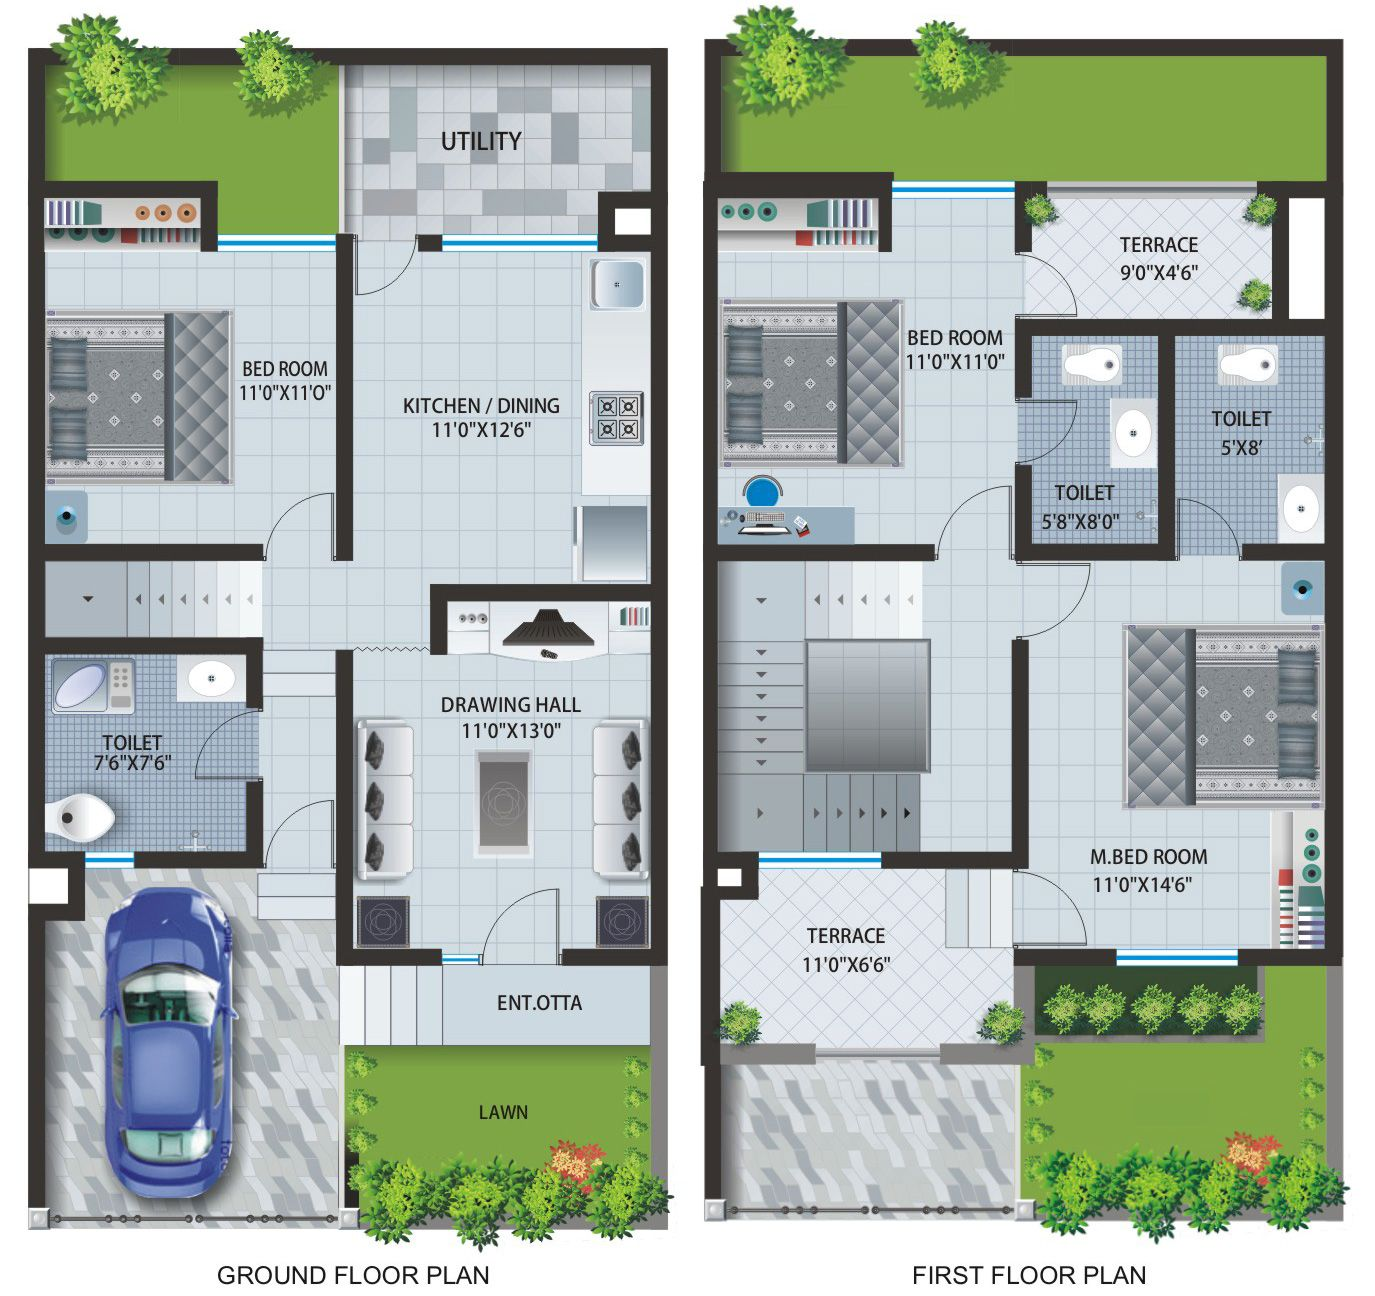 Floor plans of apartments row houses at caroline baner for Websites to design houses for free